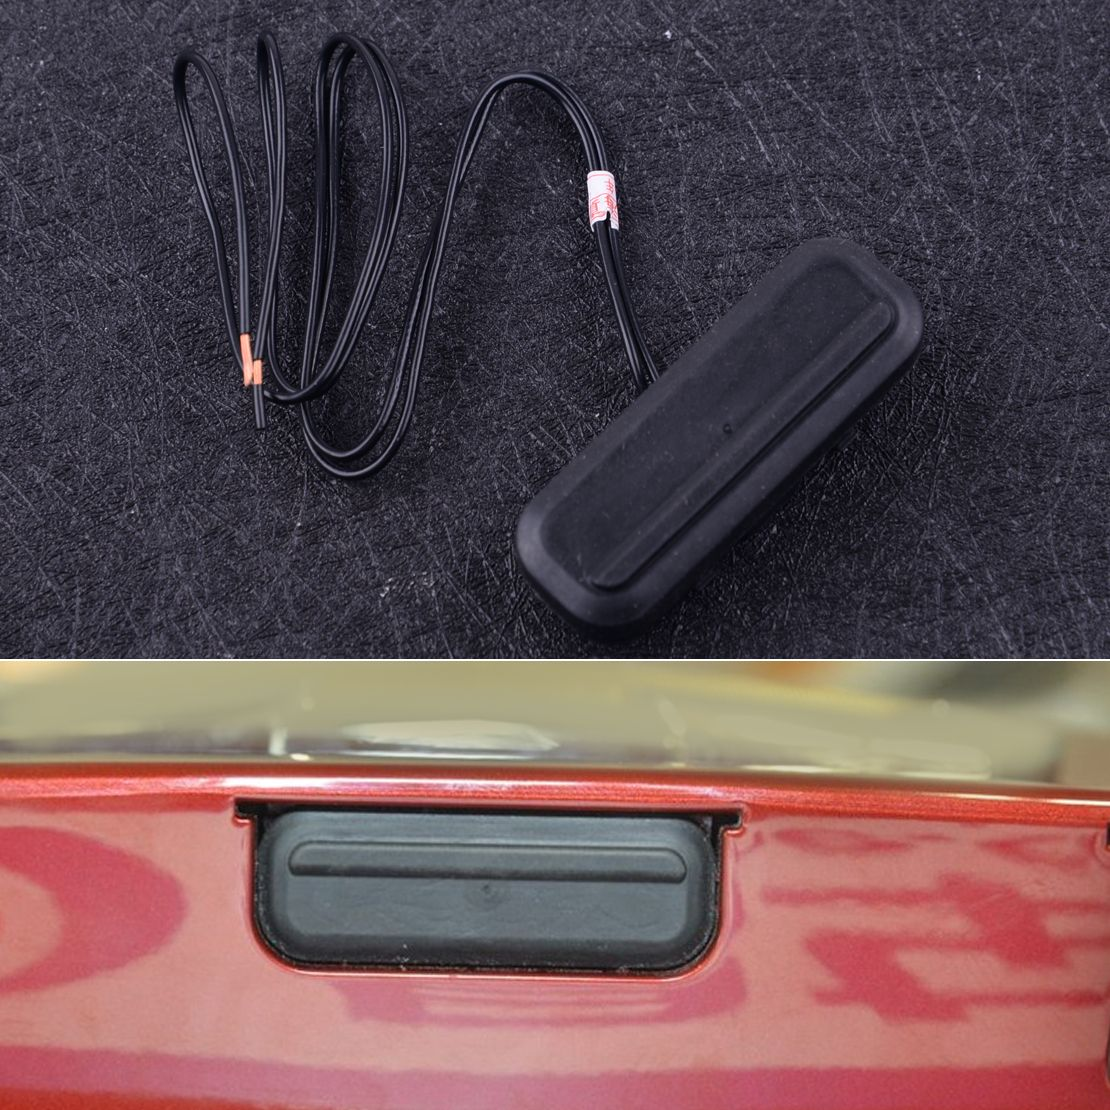 DWCX Rear Tailgate Opening Switch Trunk Release Liftgate Latch Push Button 13393912 9012141 fit for Chevrolet Cruze 2009-2014